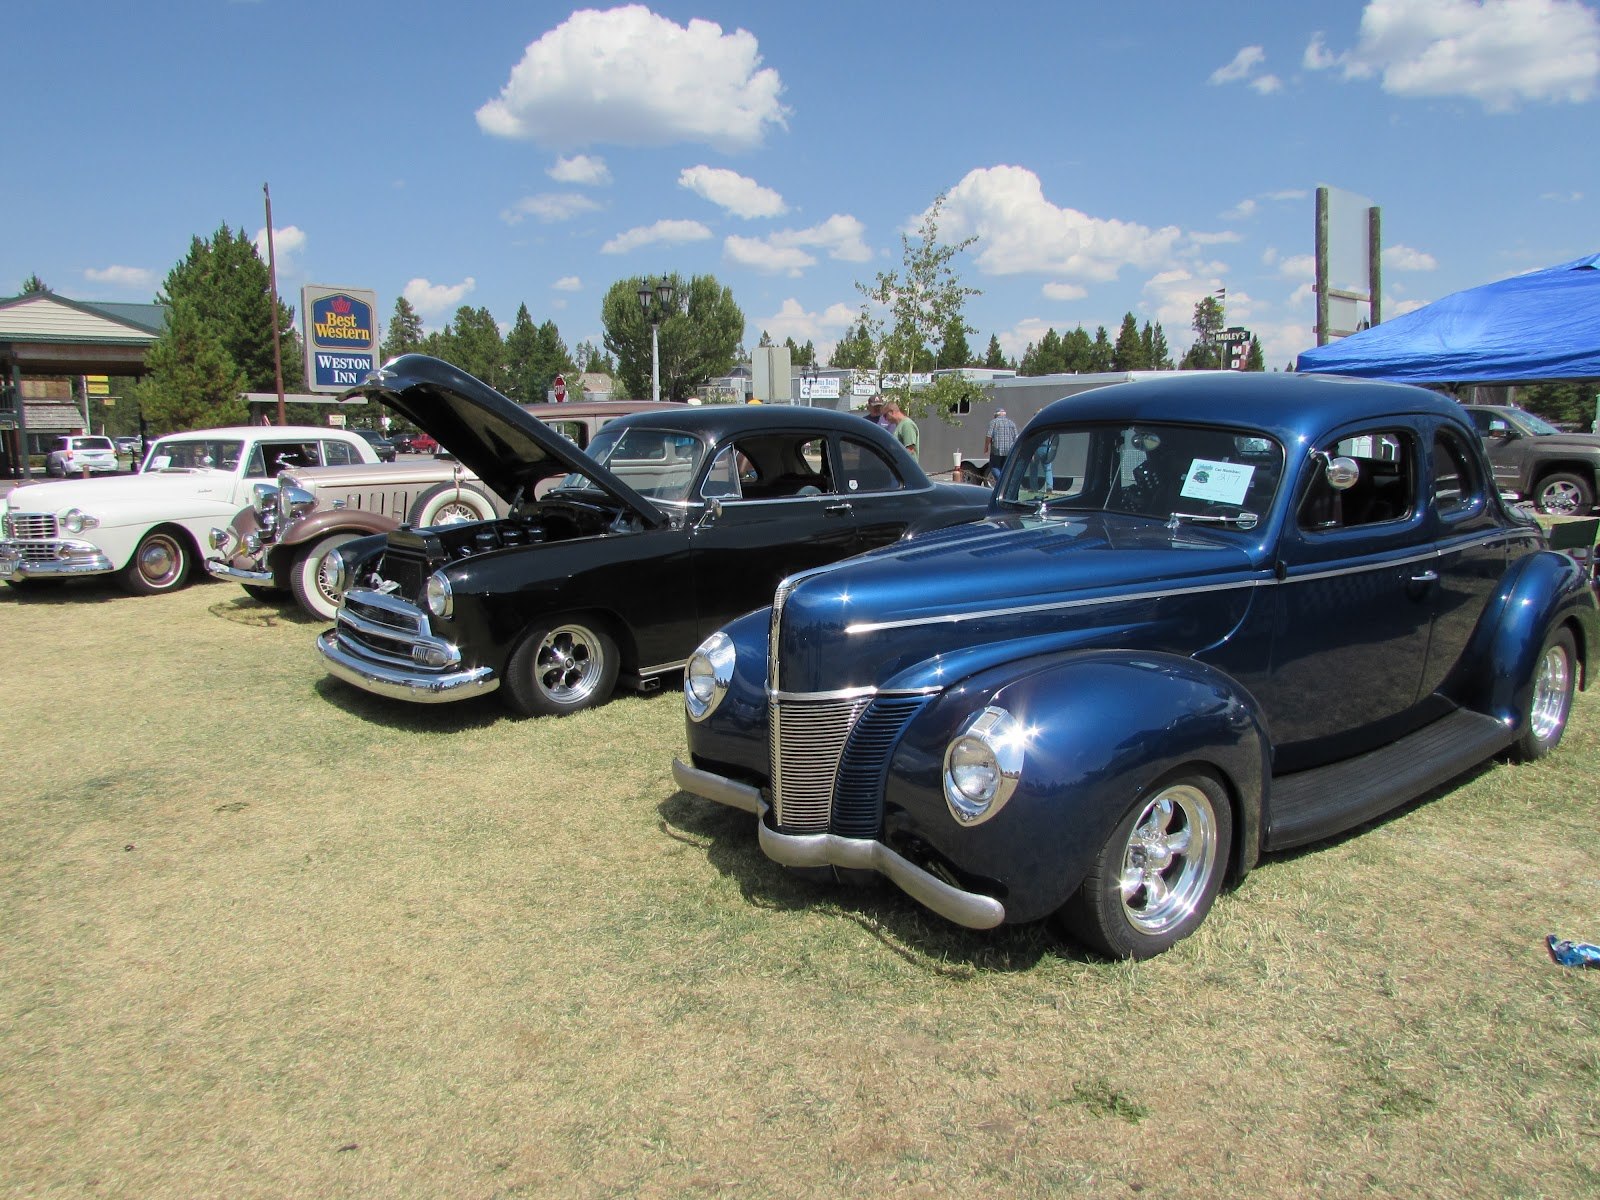 West Yellowstone Car Show